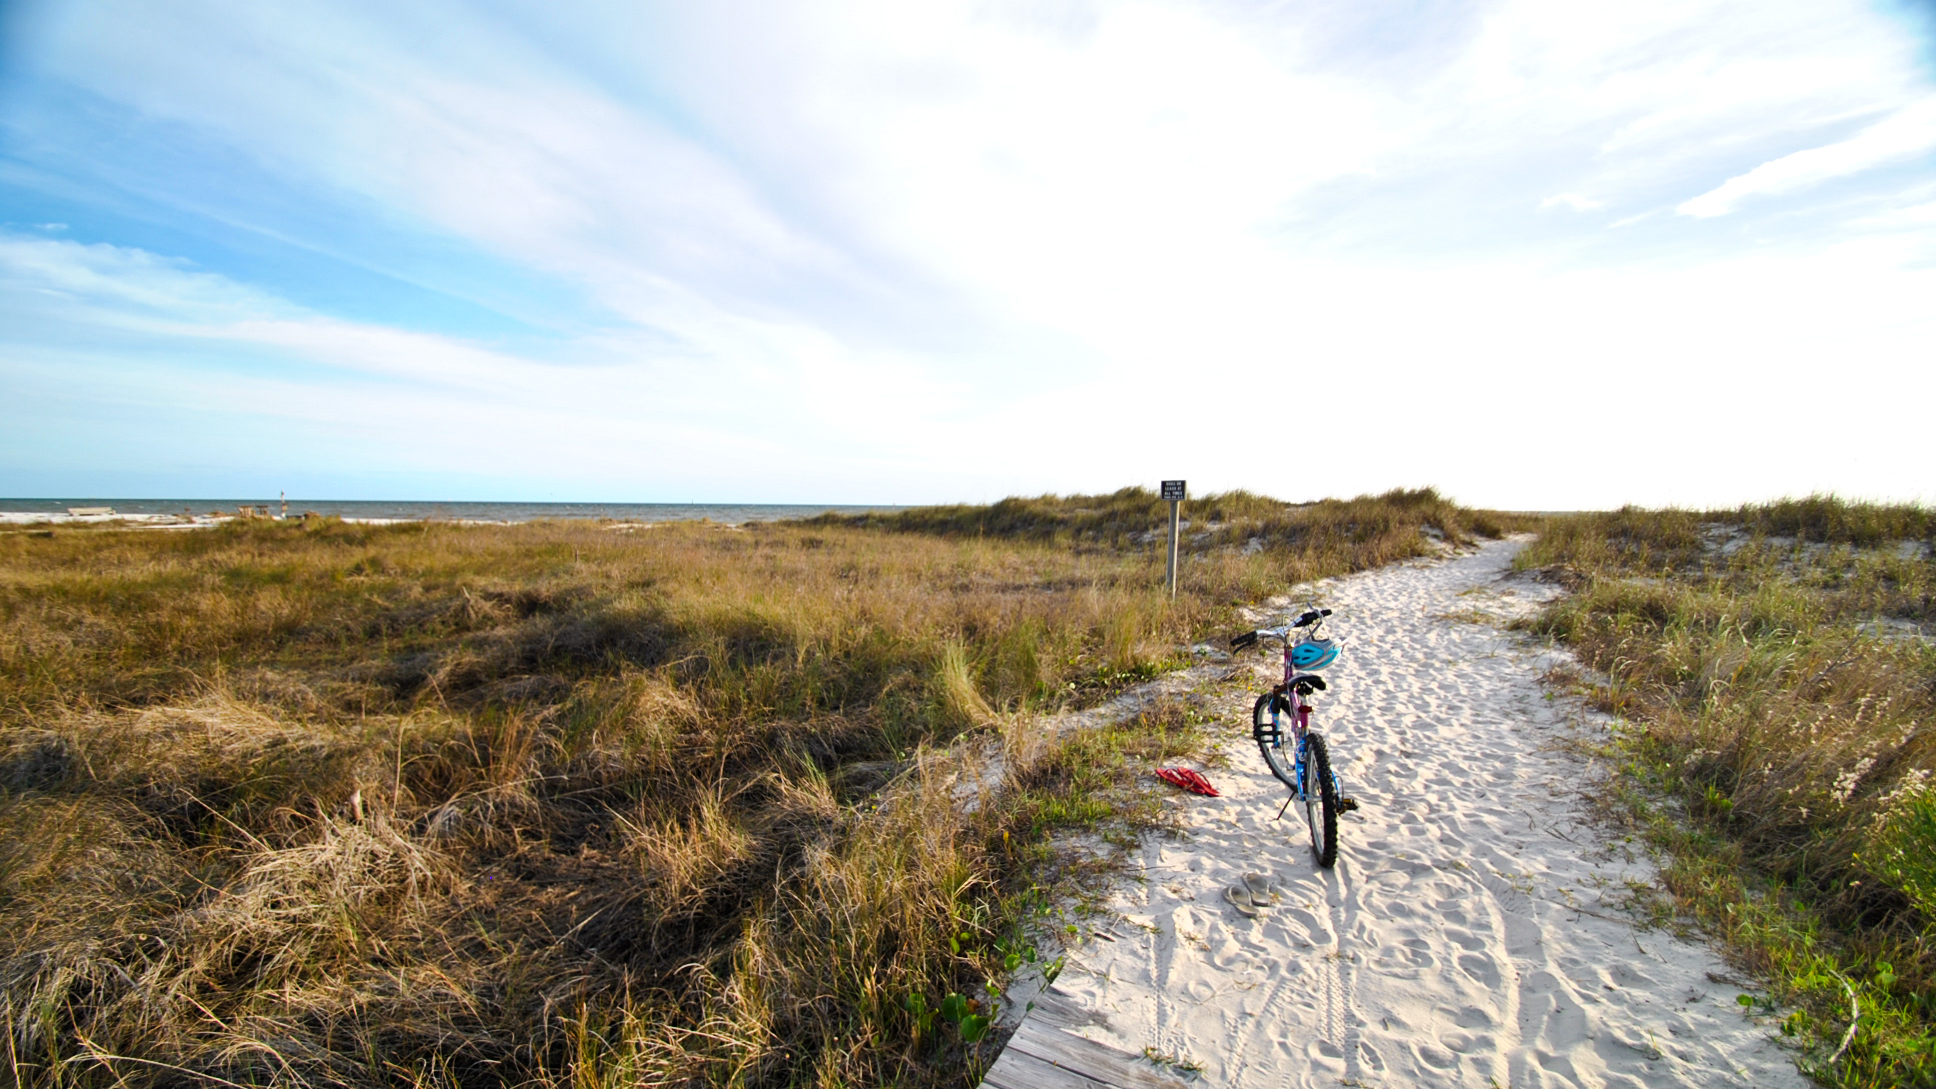 Bicycling on a bike trail on the beach, behind De Soto Landings, on Dauphin Island Alabama. There are many vacation home rentals with pools in De Soto Landings